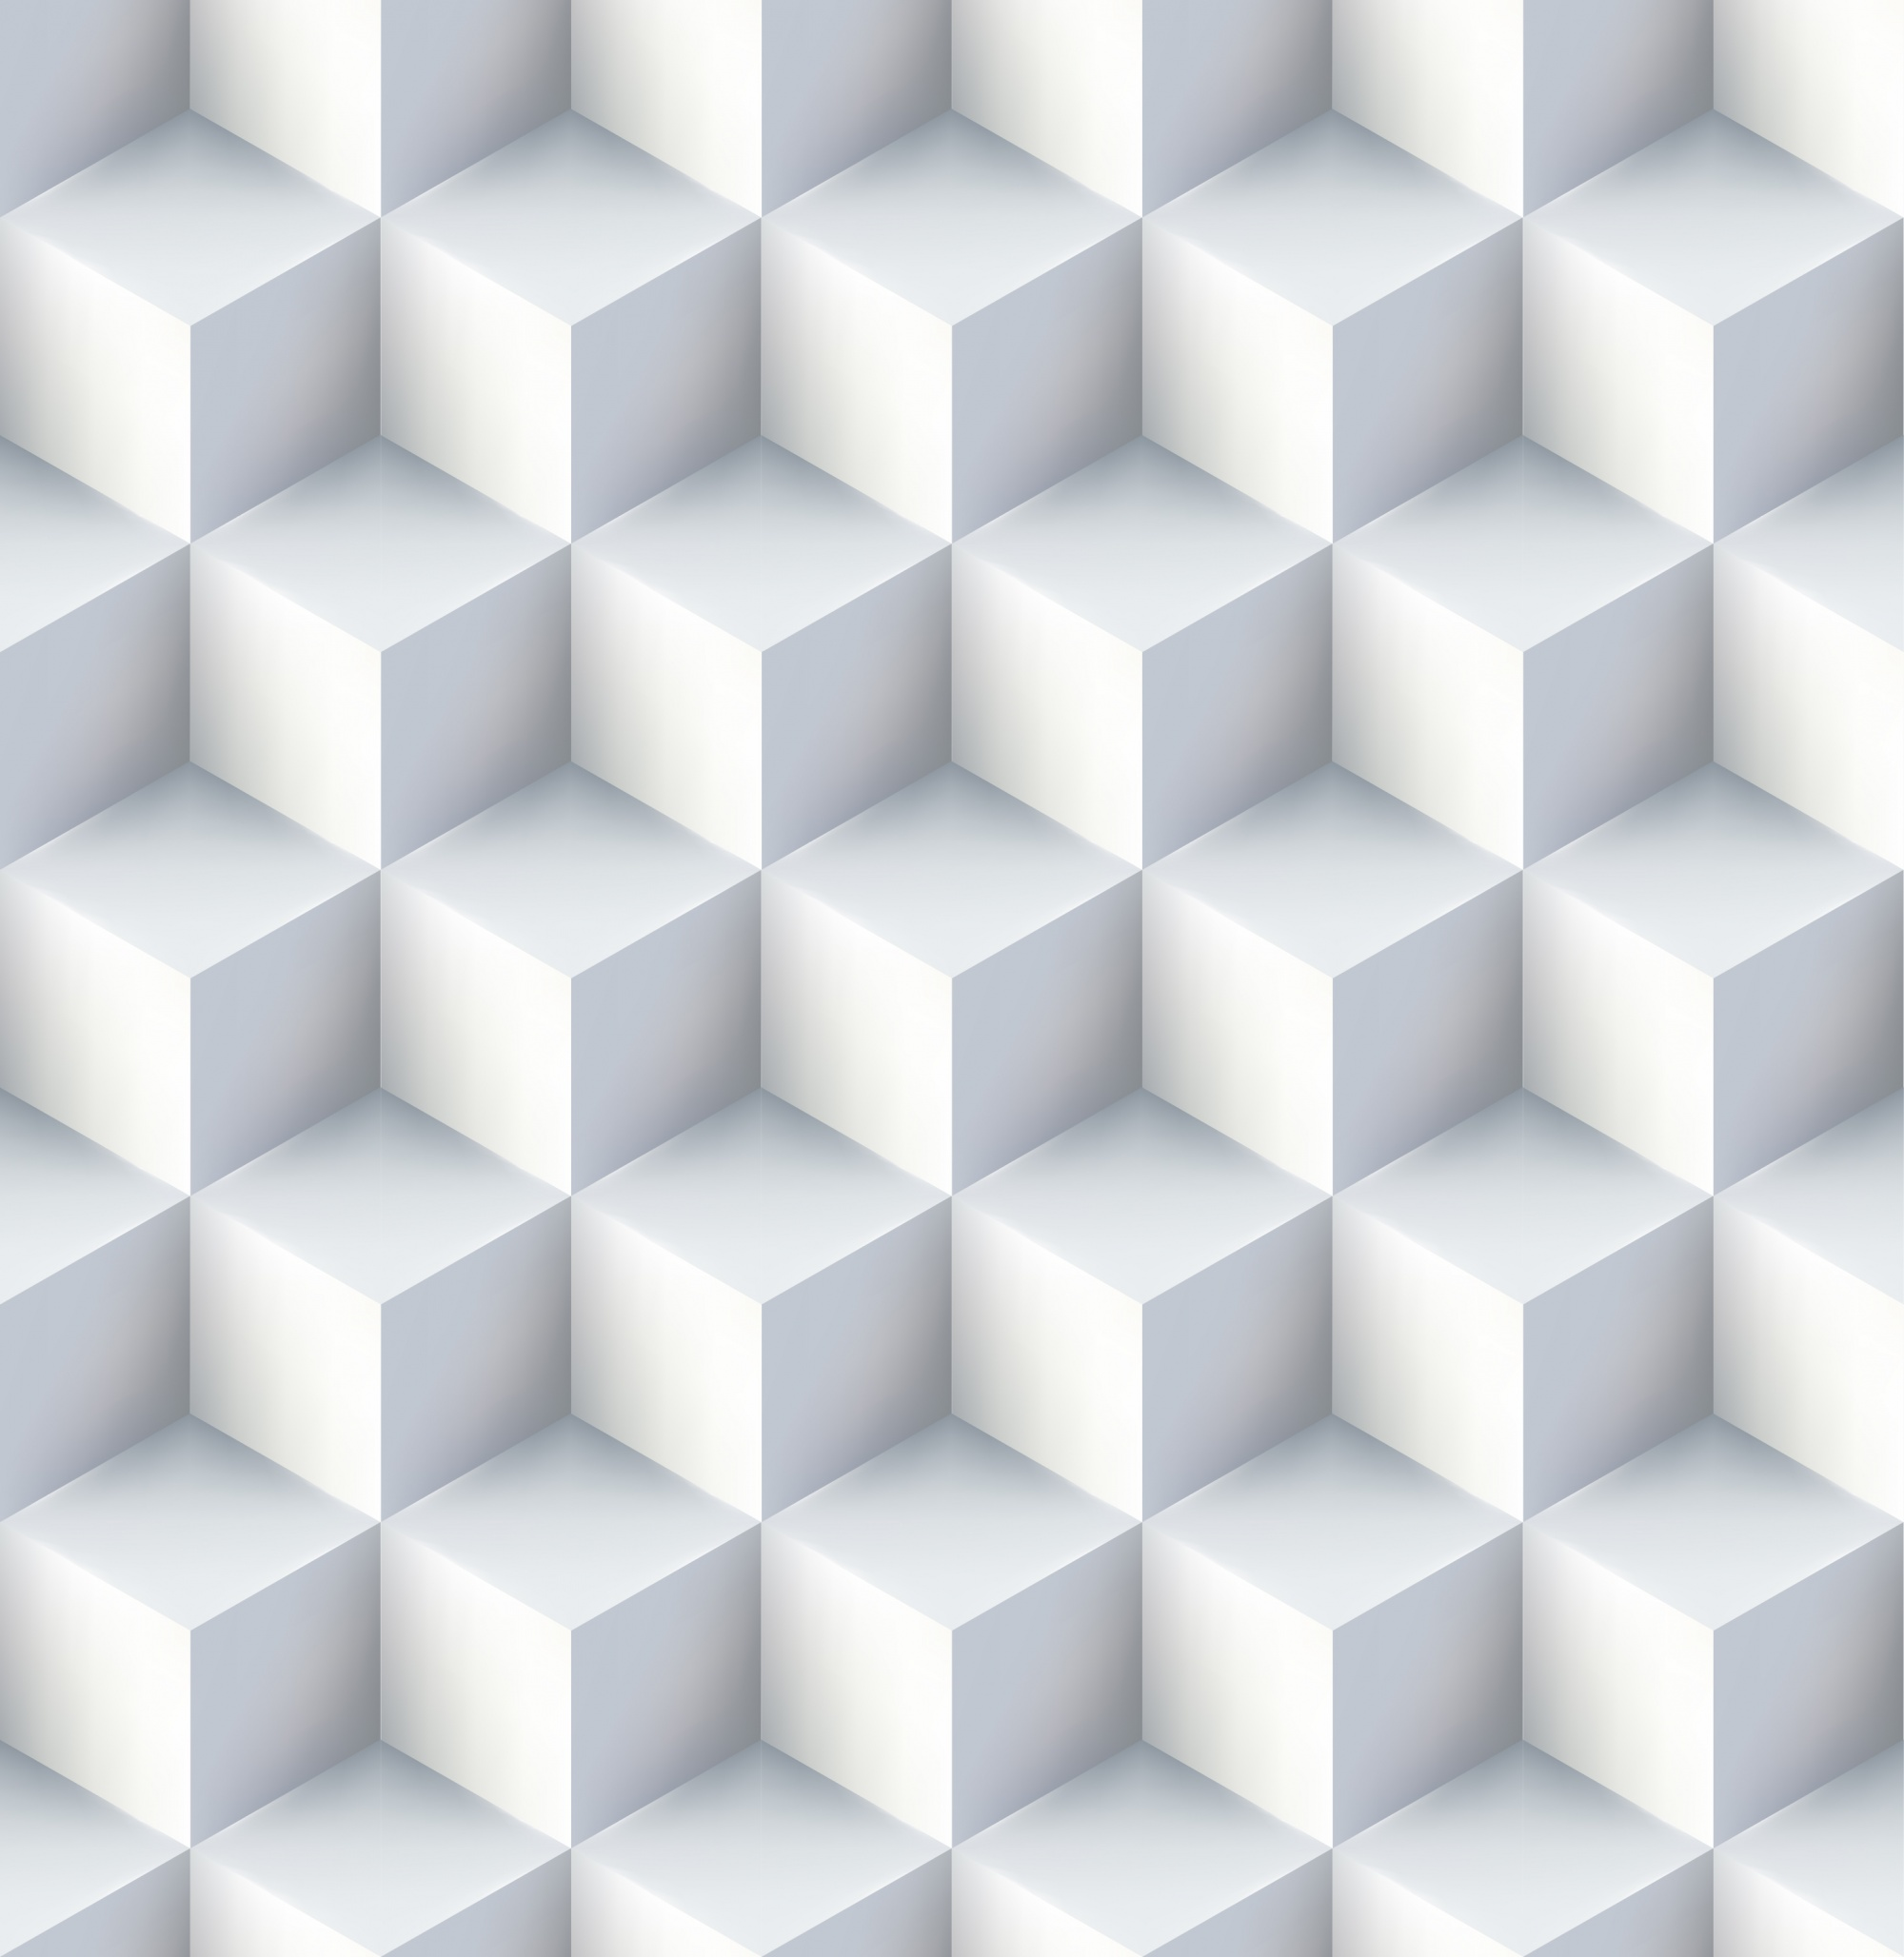 Abstract background with a 3d pattern